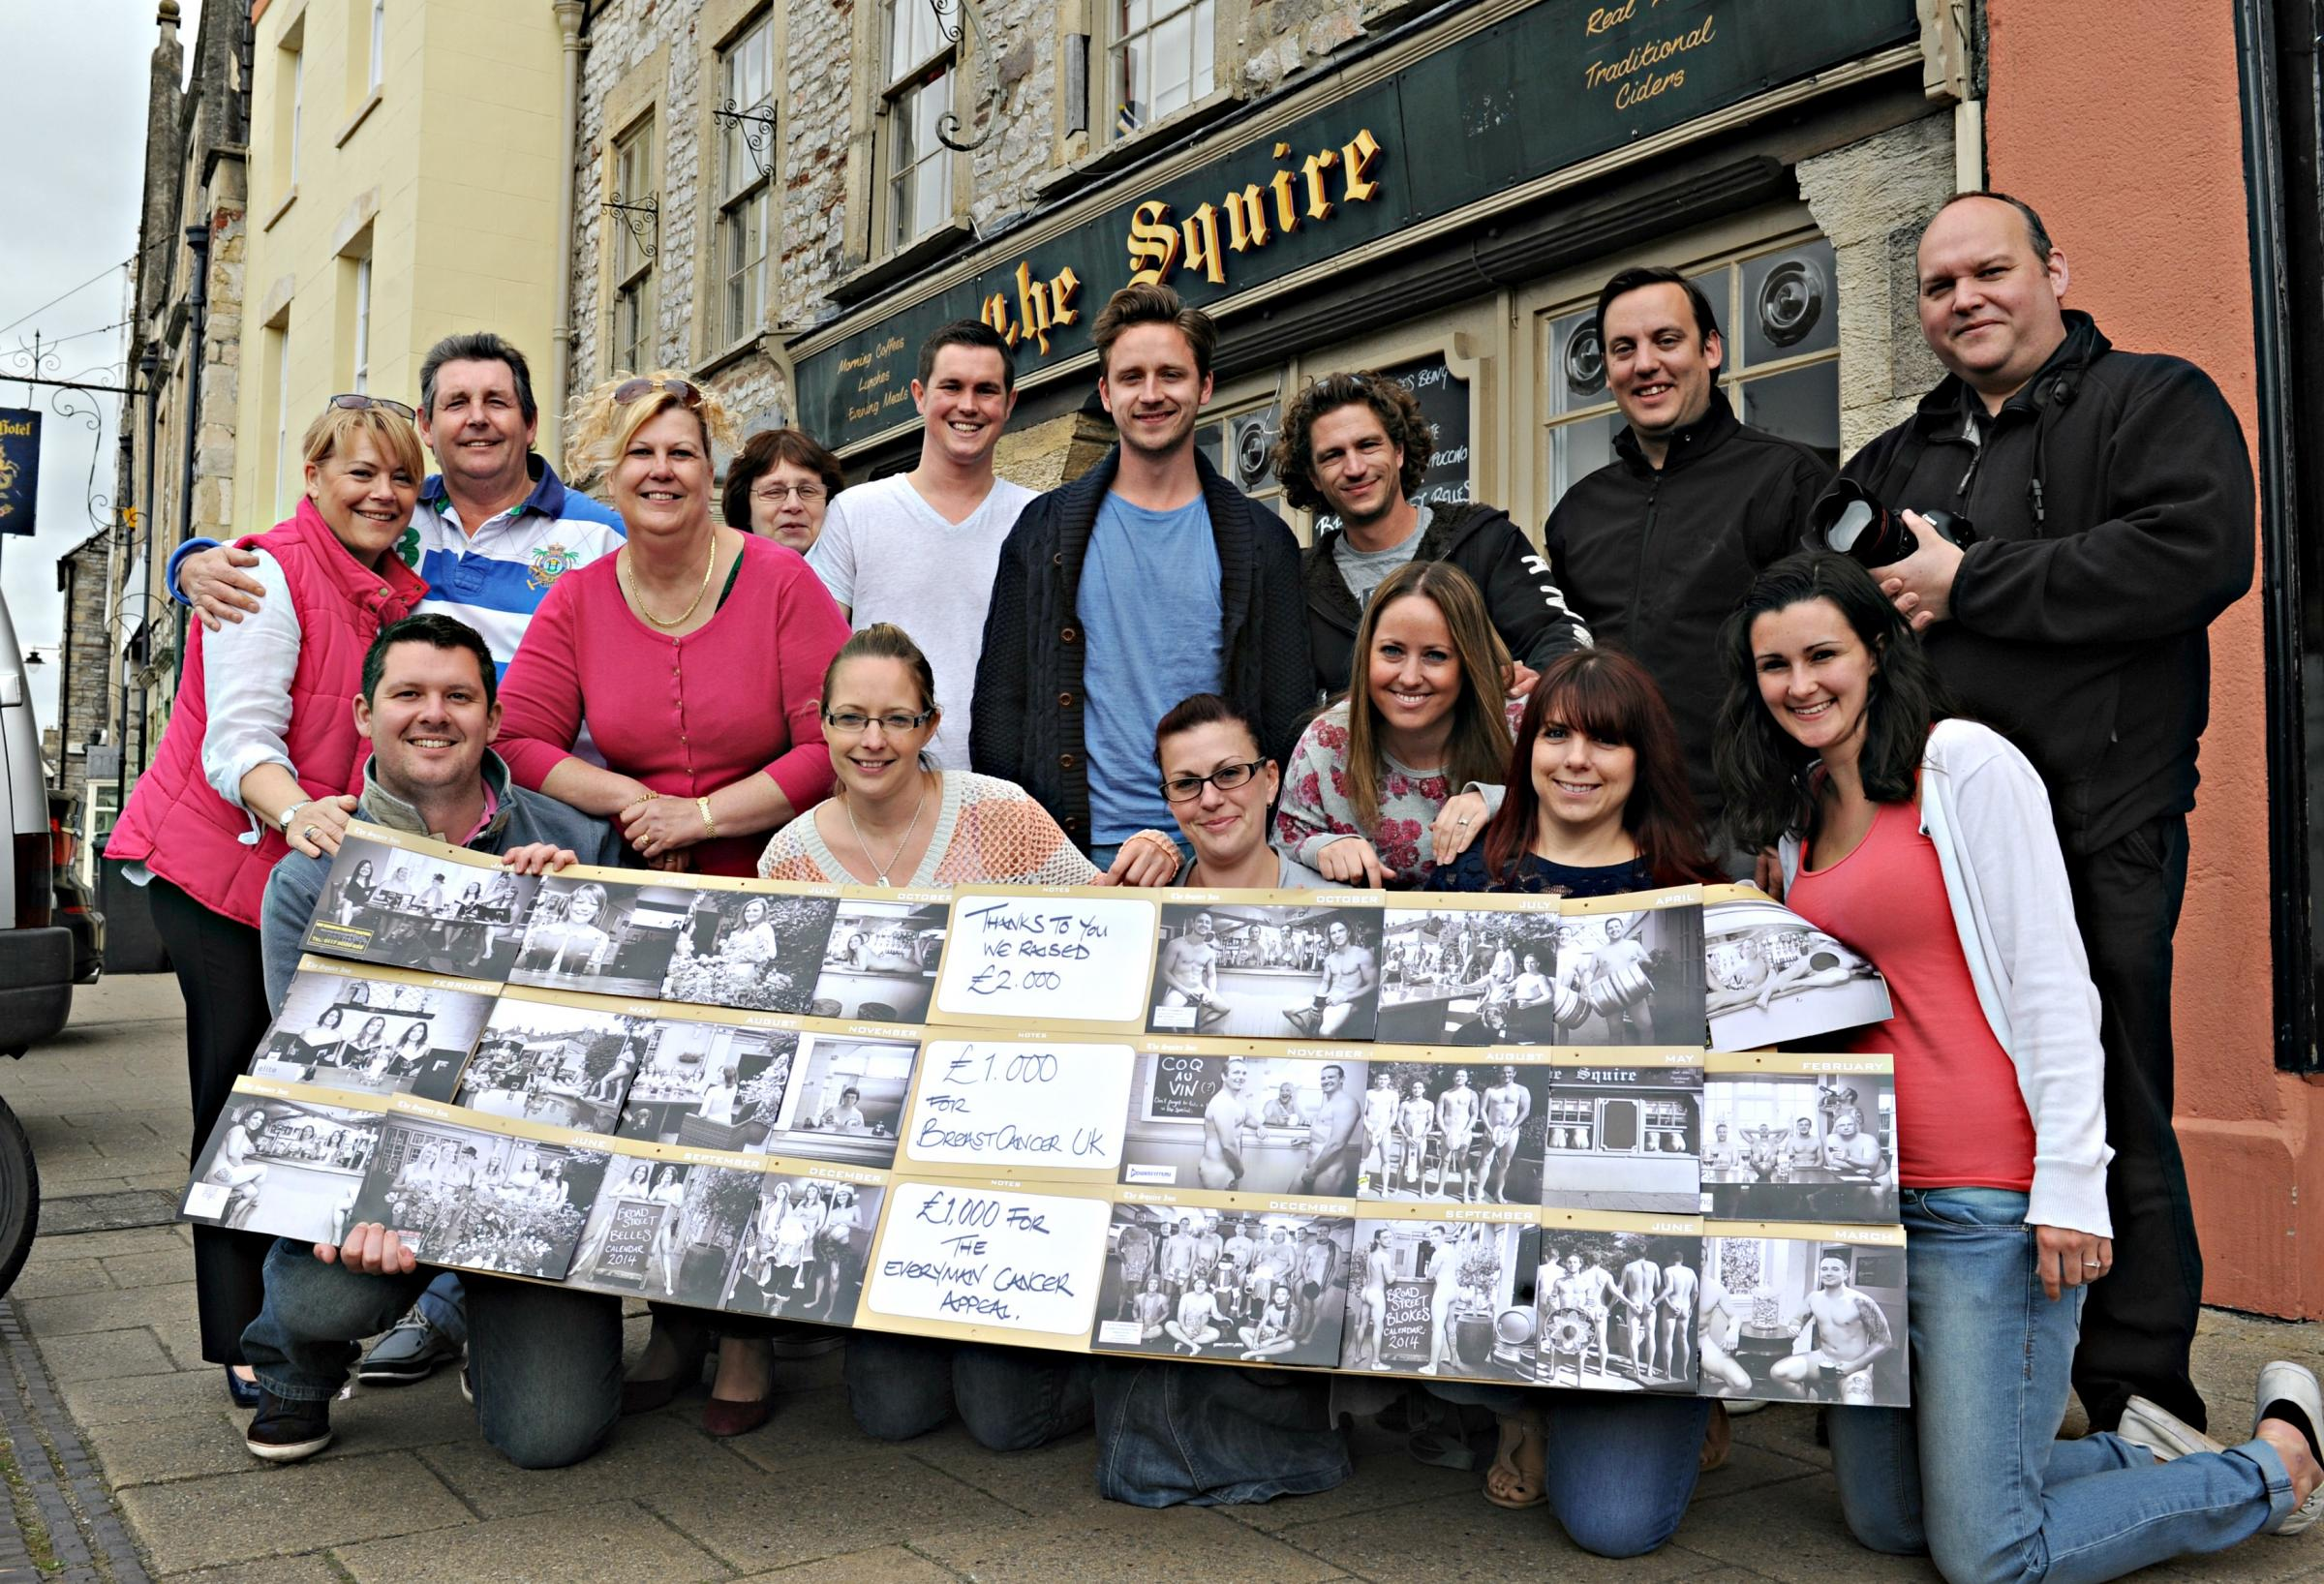 Customers and staff of the The Squire in Chipping Sodbury who have raised £2,000 for charity from the sale of their naked calendars